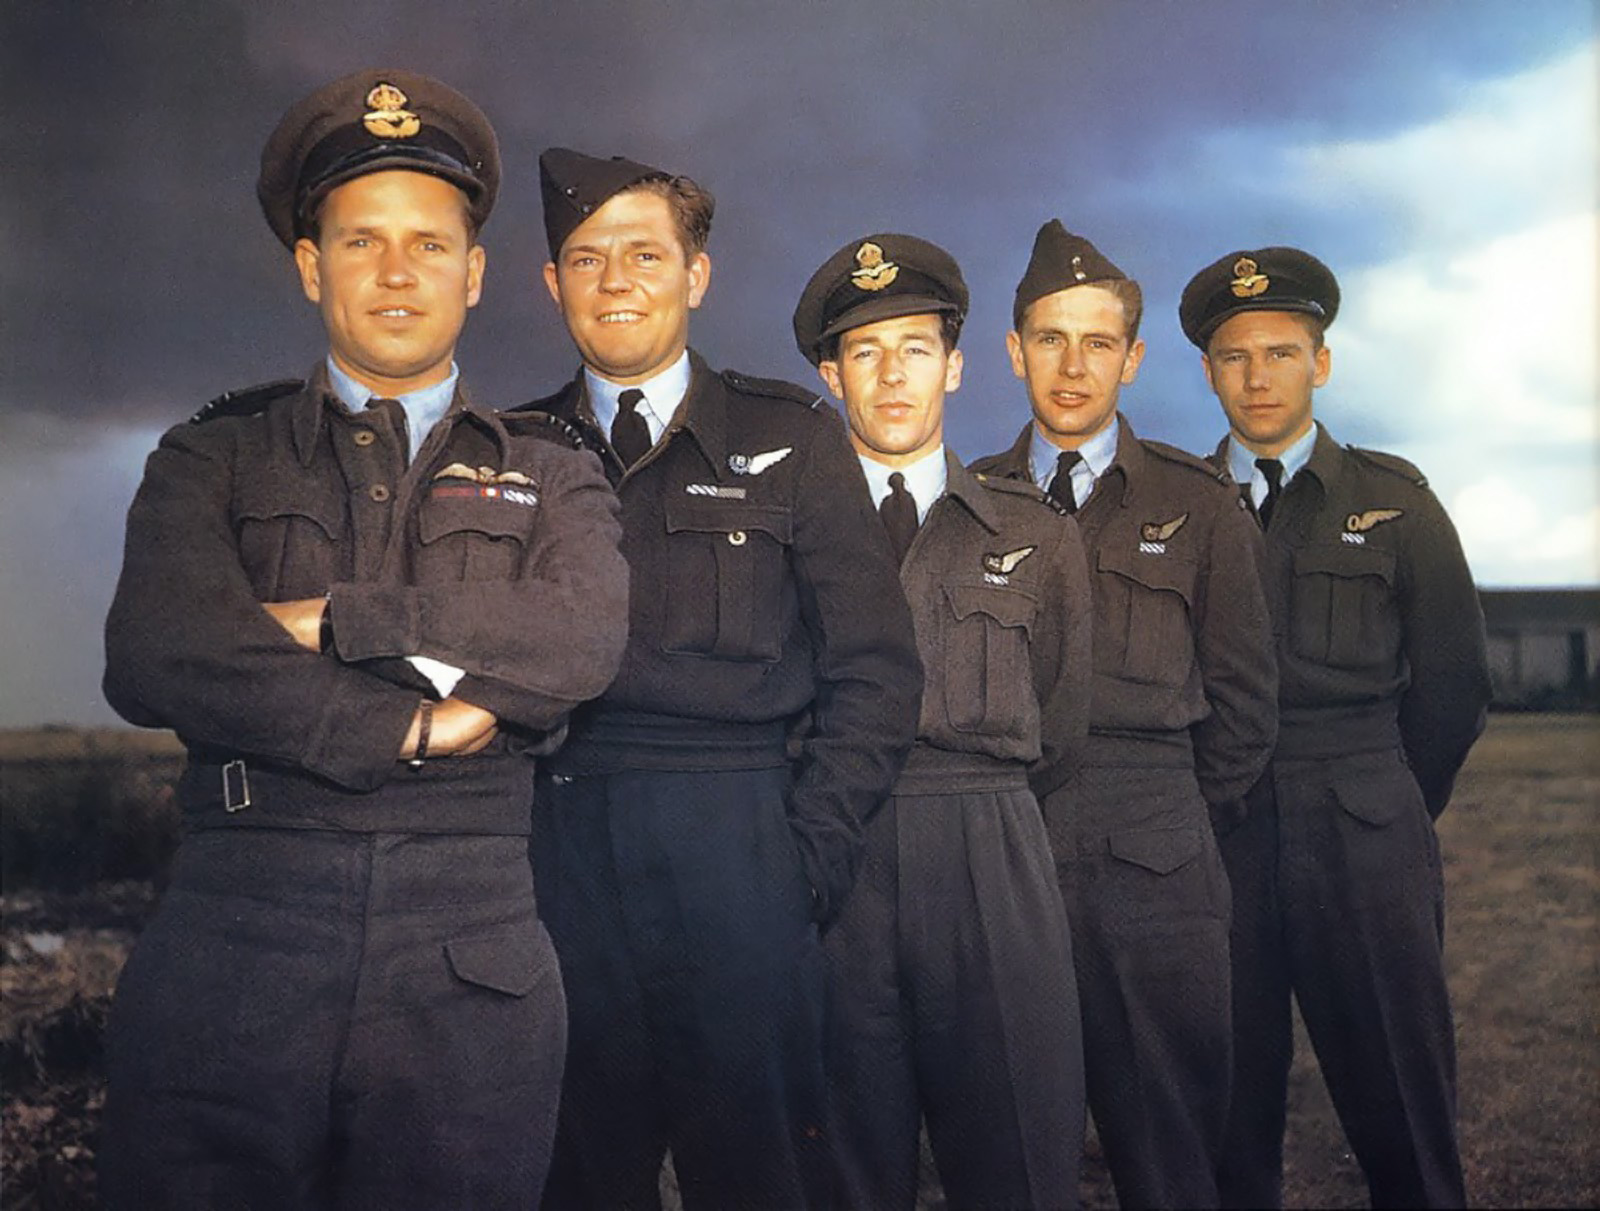 Wing Commander Guy Gibson (front) and the crew of AJ-G. The purple medal ribbon, below the aircrew brevet (officially known as an aircrew badge) on Gibson's tunic, is that of the Victoria Cross (VC)